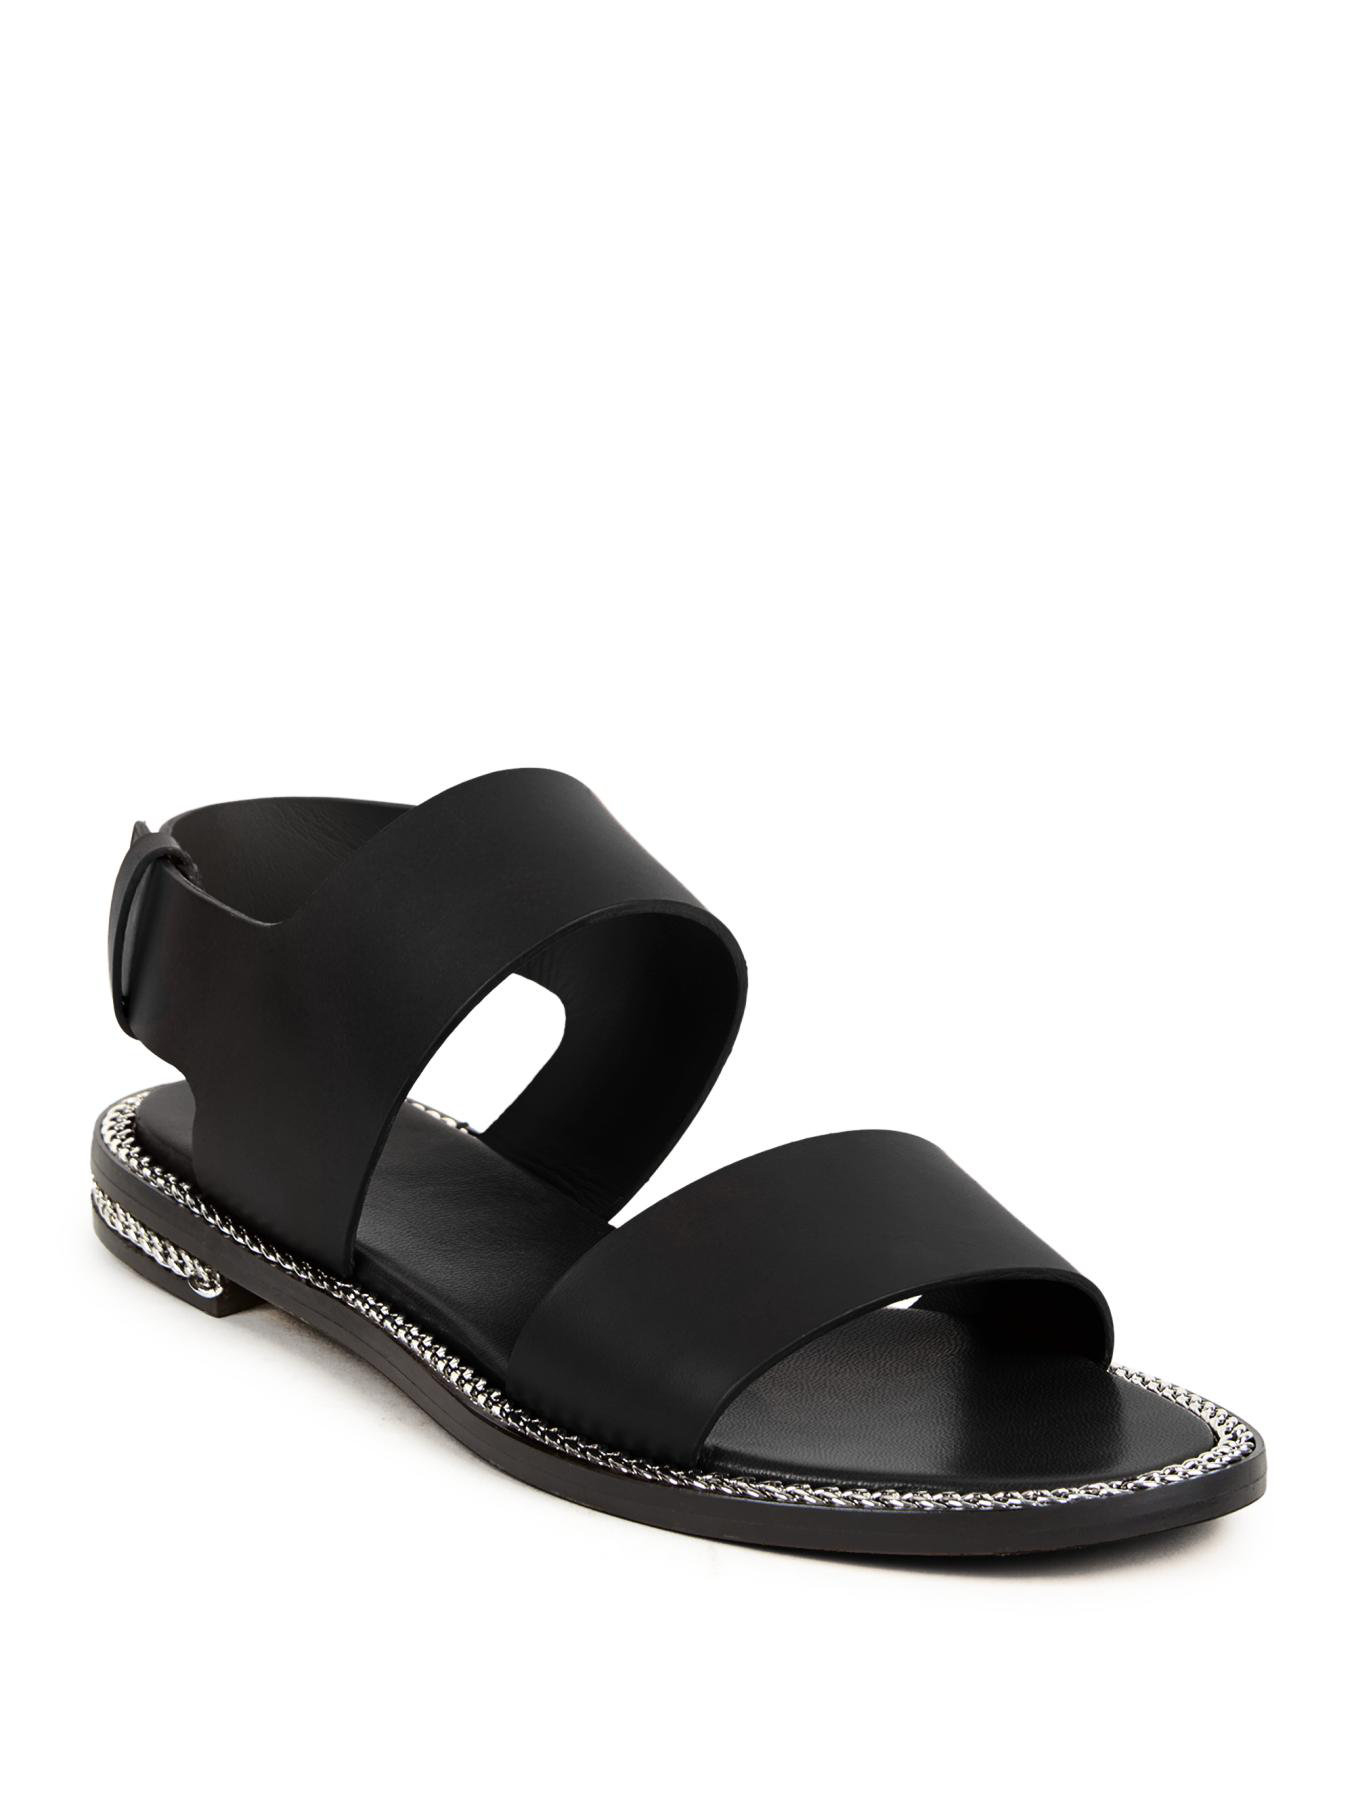 Chain-trimmed Leather Slippers - Black Givenchy hn6OiZlAds